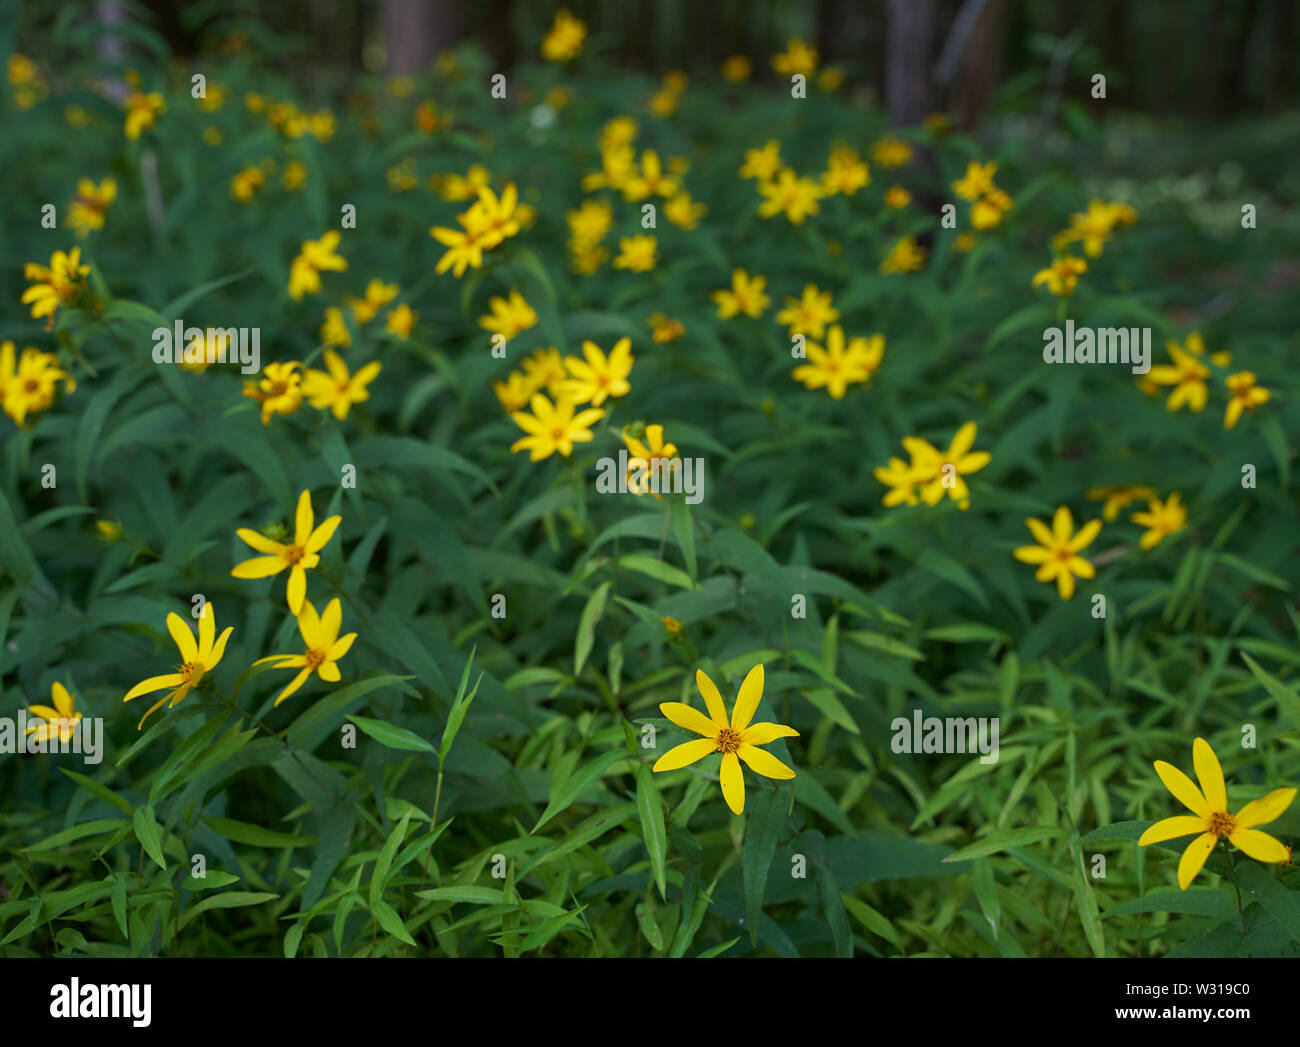 Helianthus microcephalus - Small Woodland Sunflower found along a  hiking trail at Horton Grove Nature Preserve in Durham, NC. - Stock Image